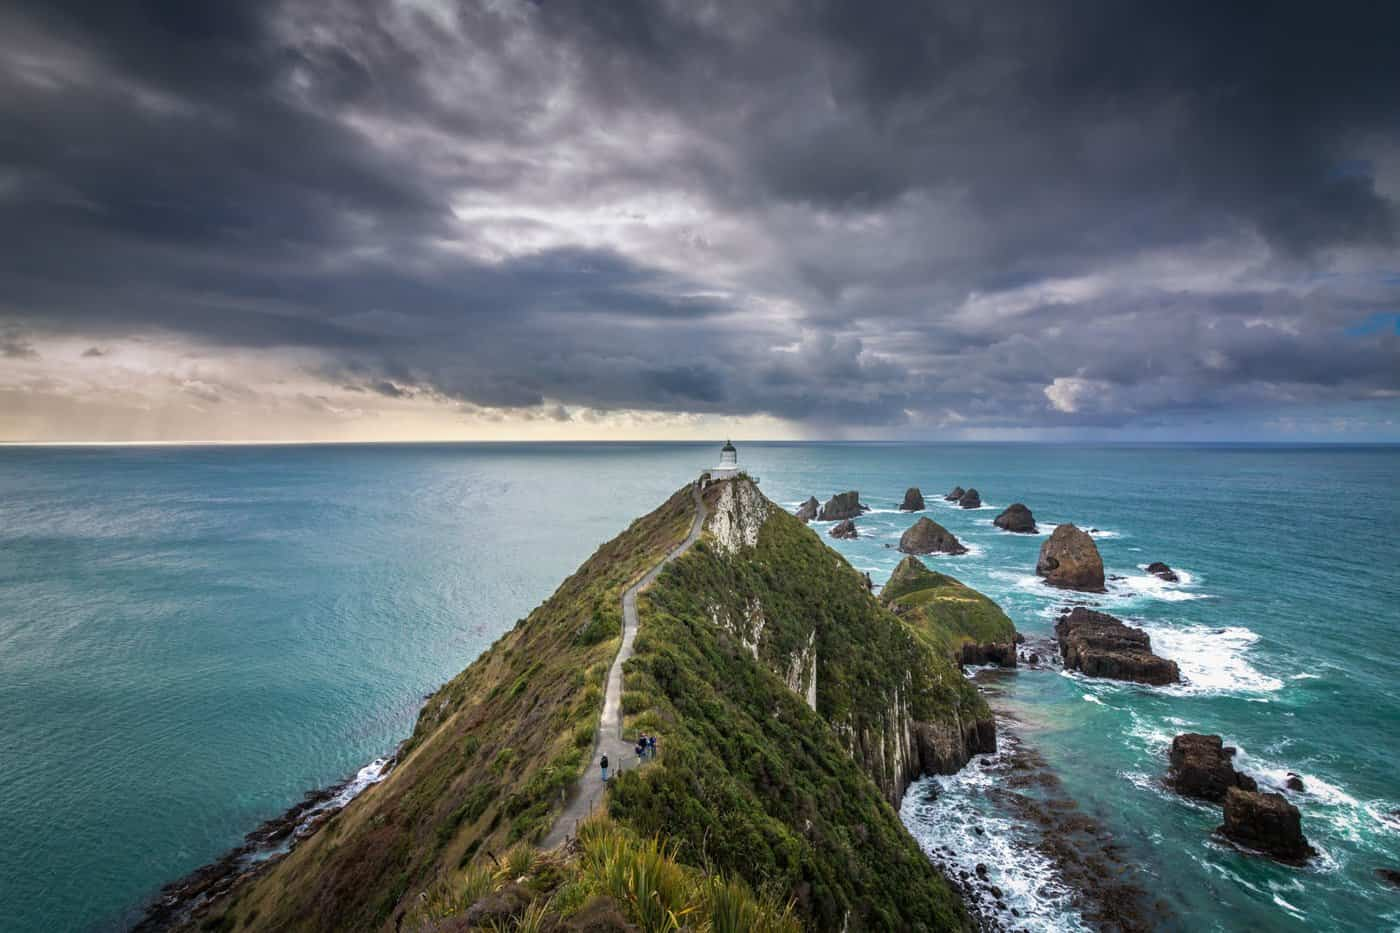 Expect dramatic and unpredictable weather if visiting New Zealand in March.